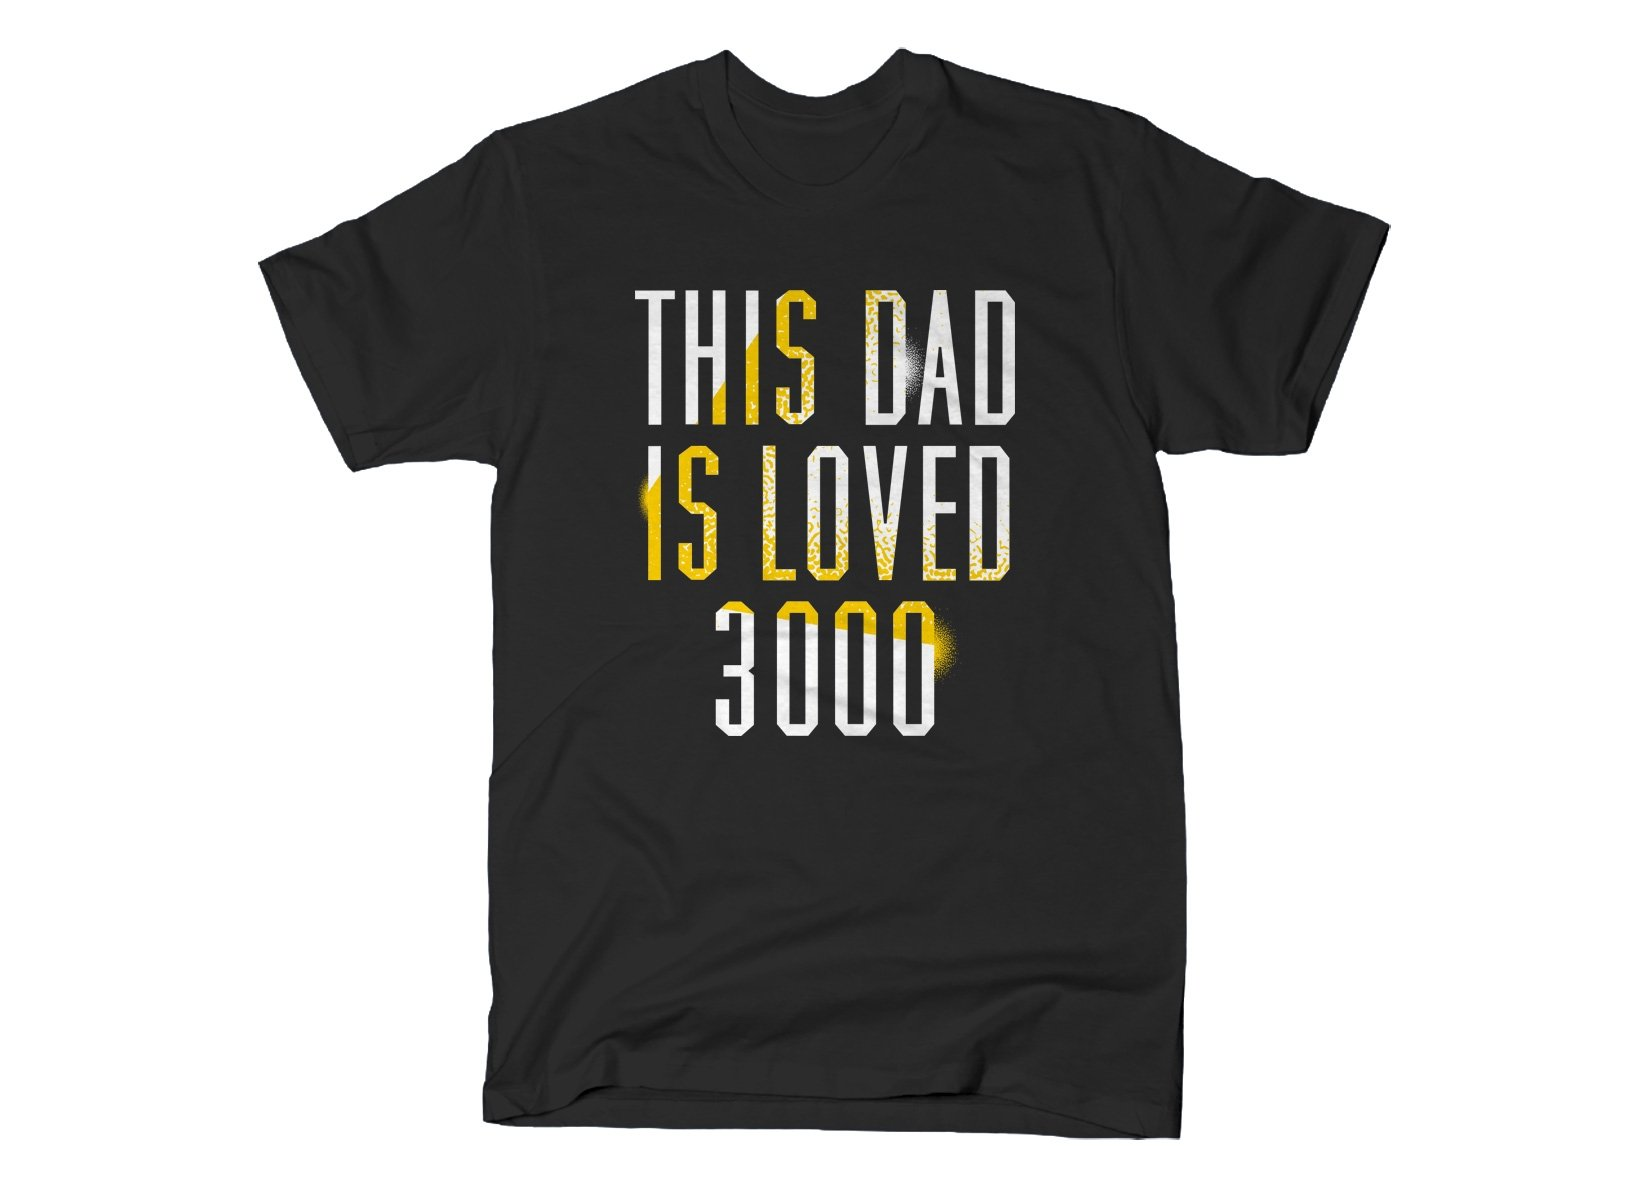 This Dad Is Loved 3000 on Mens T-Shirt